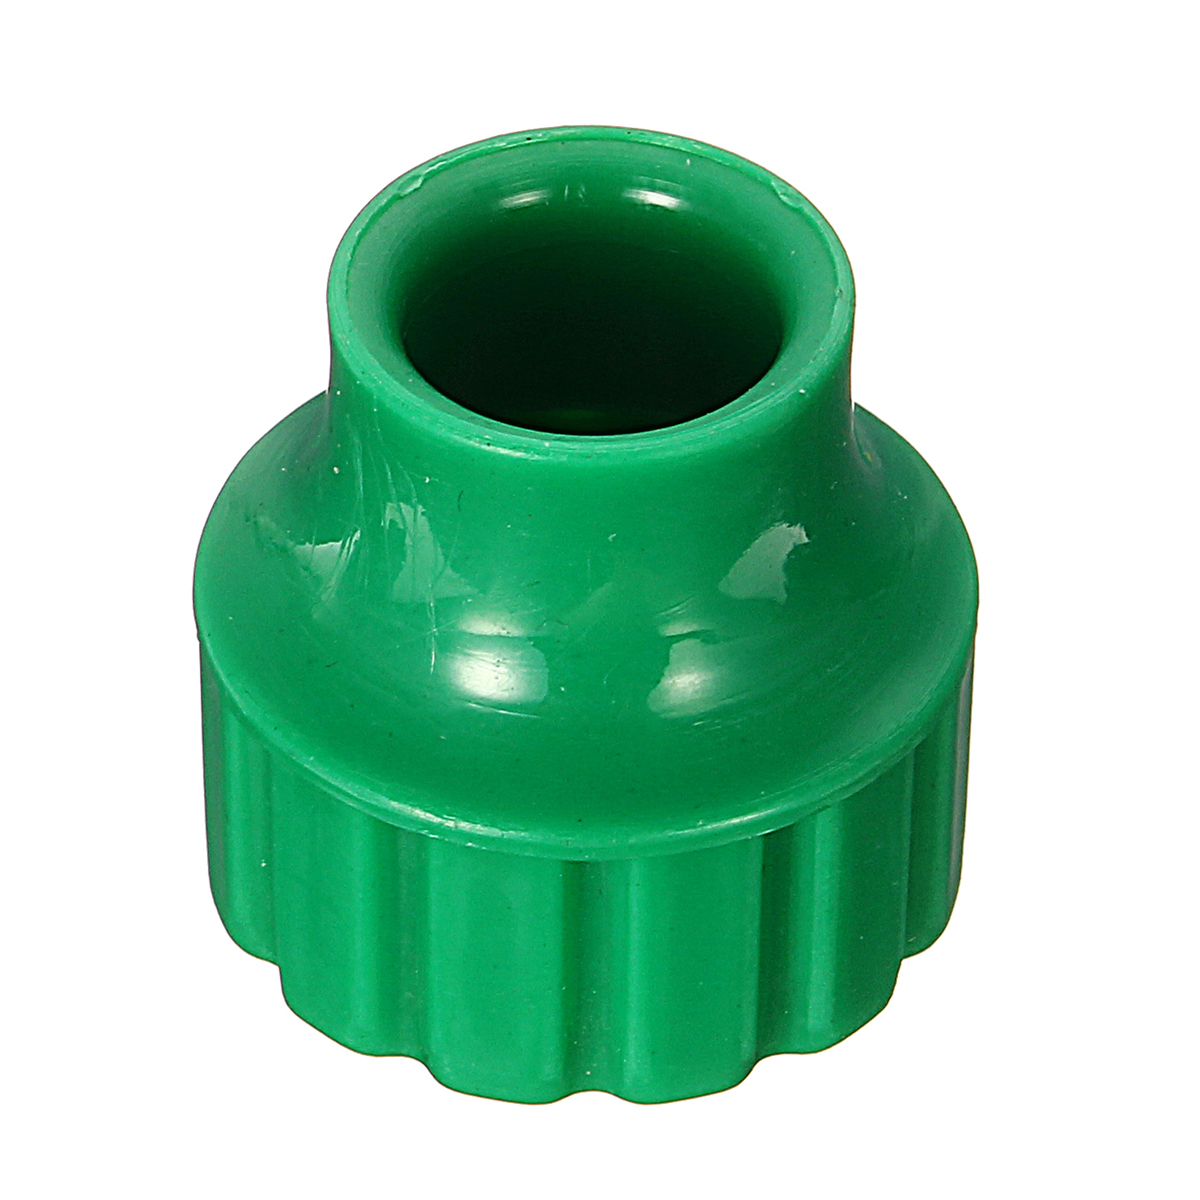 10Pcs Plastic Garden Water Hose Pipe Quick Connectors Fitting For 4x7mm Micro Hose